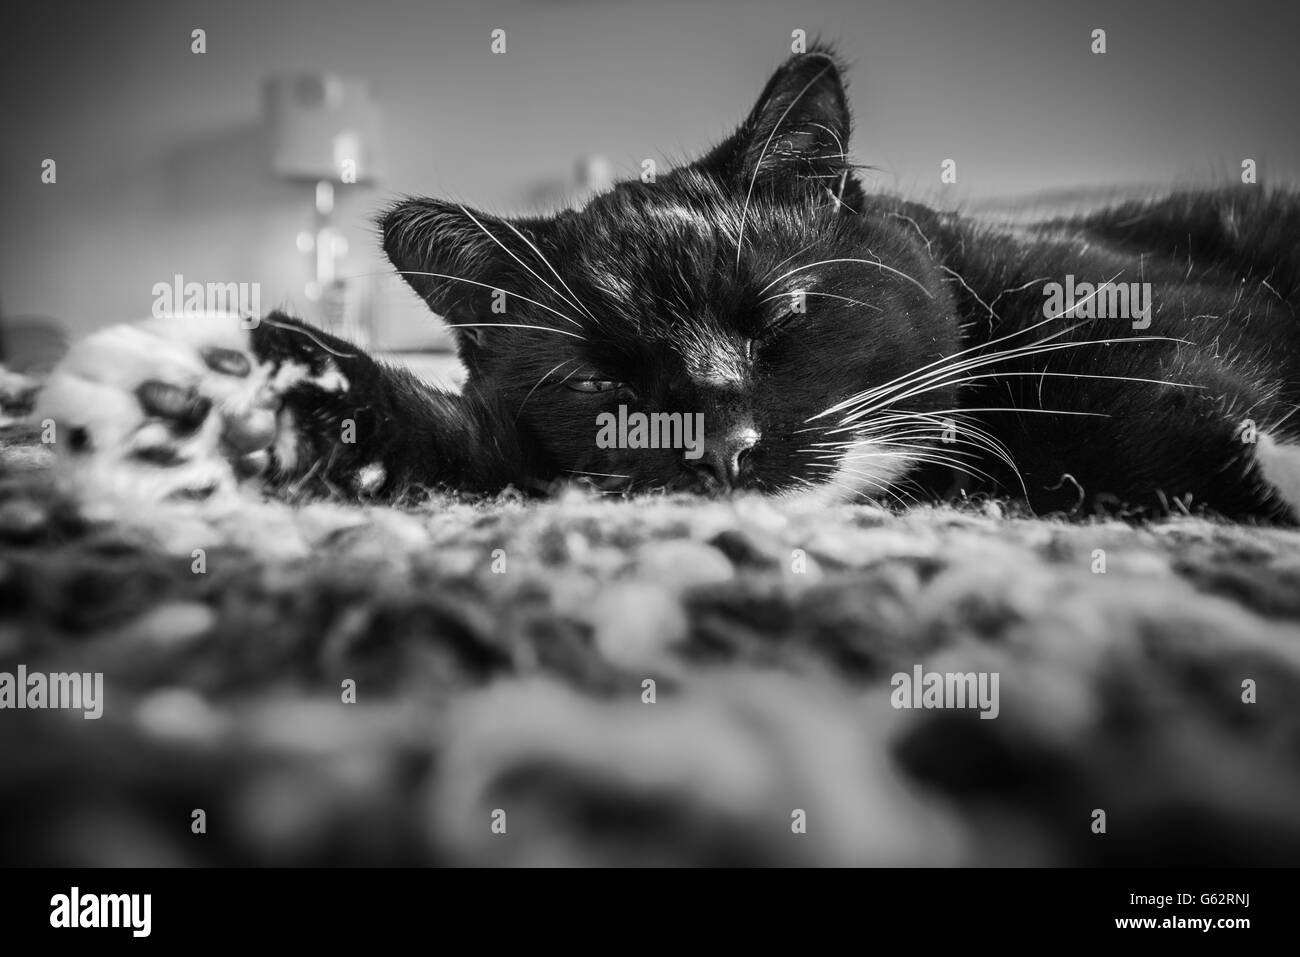 Cat laid down with one eye slightly open - Stock Image